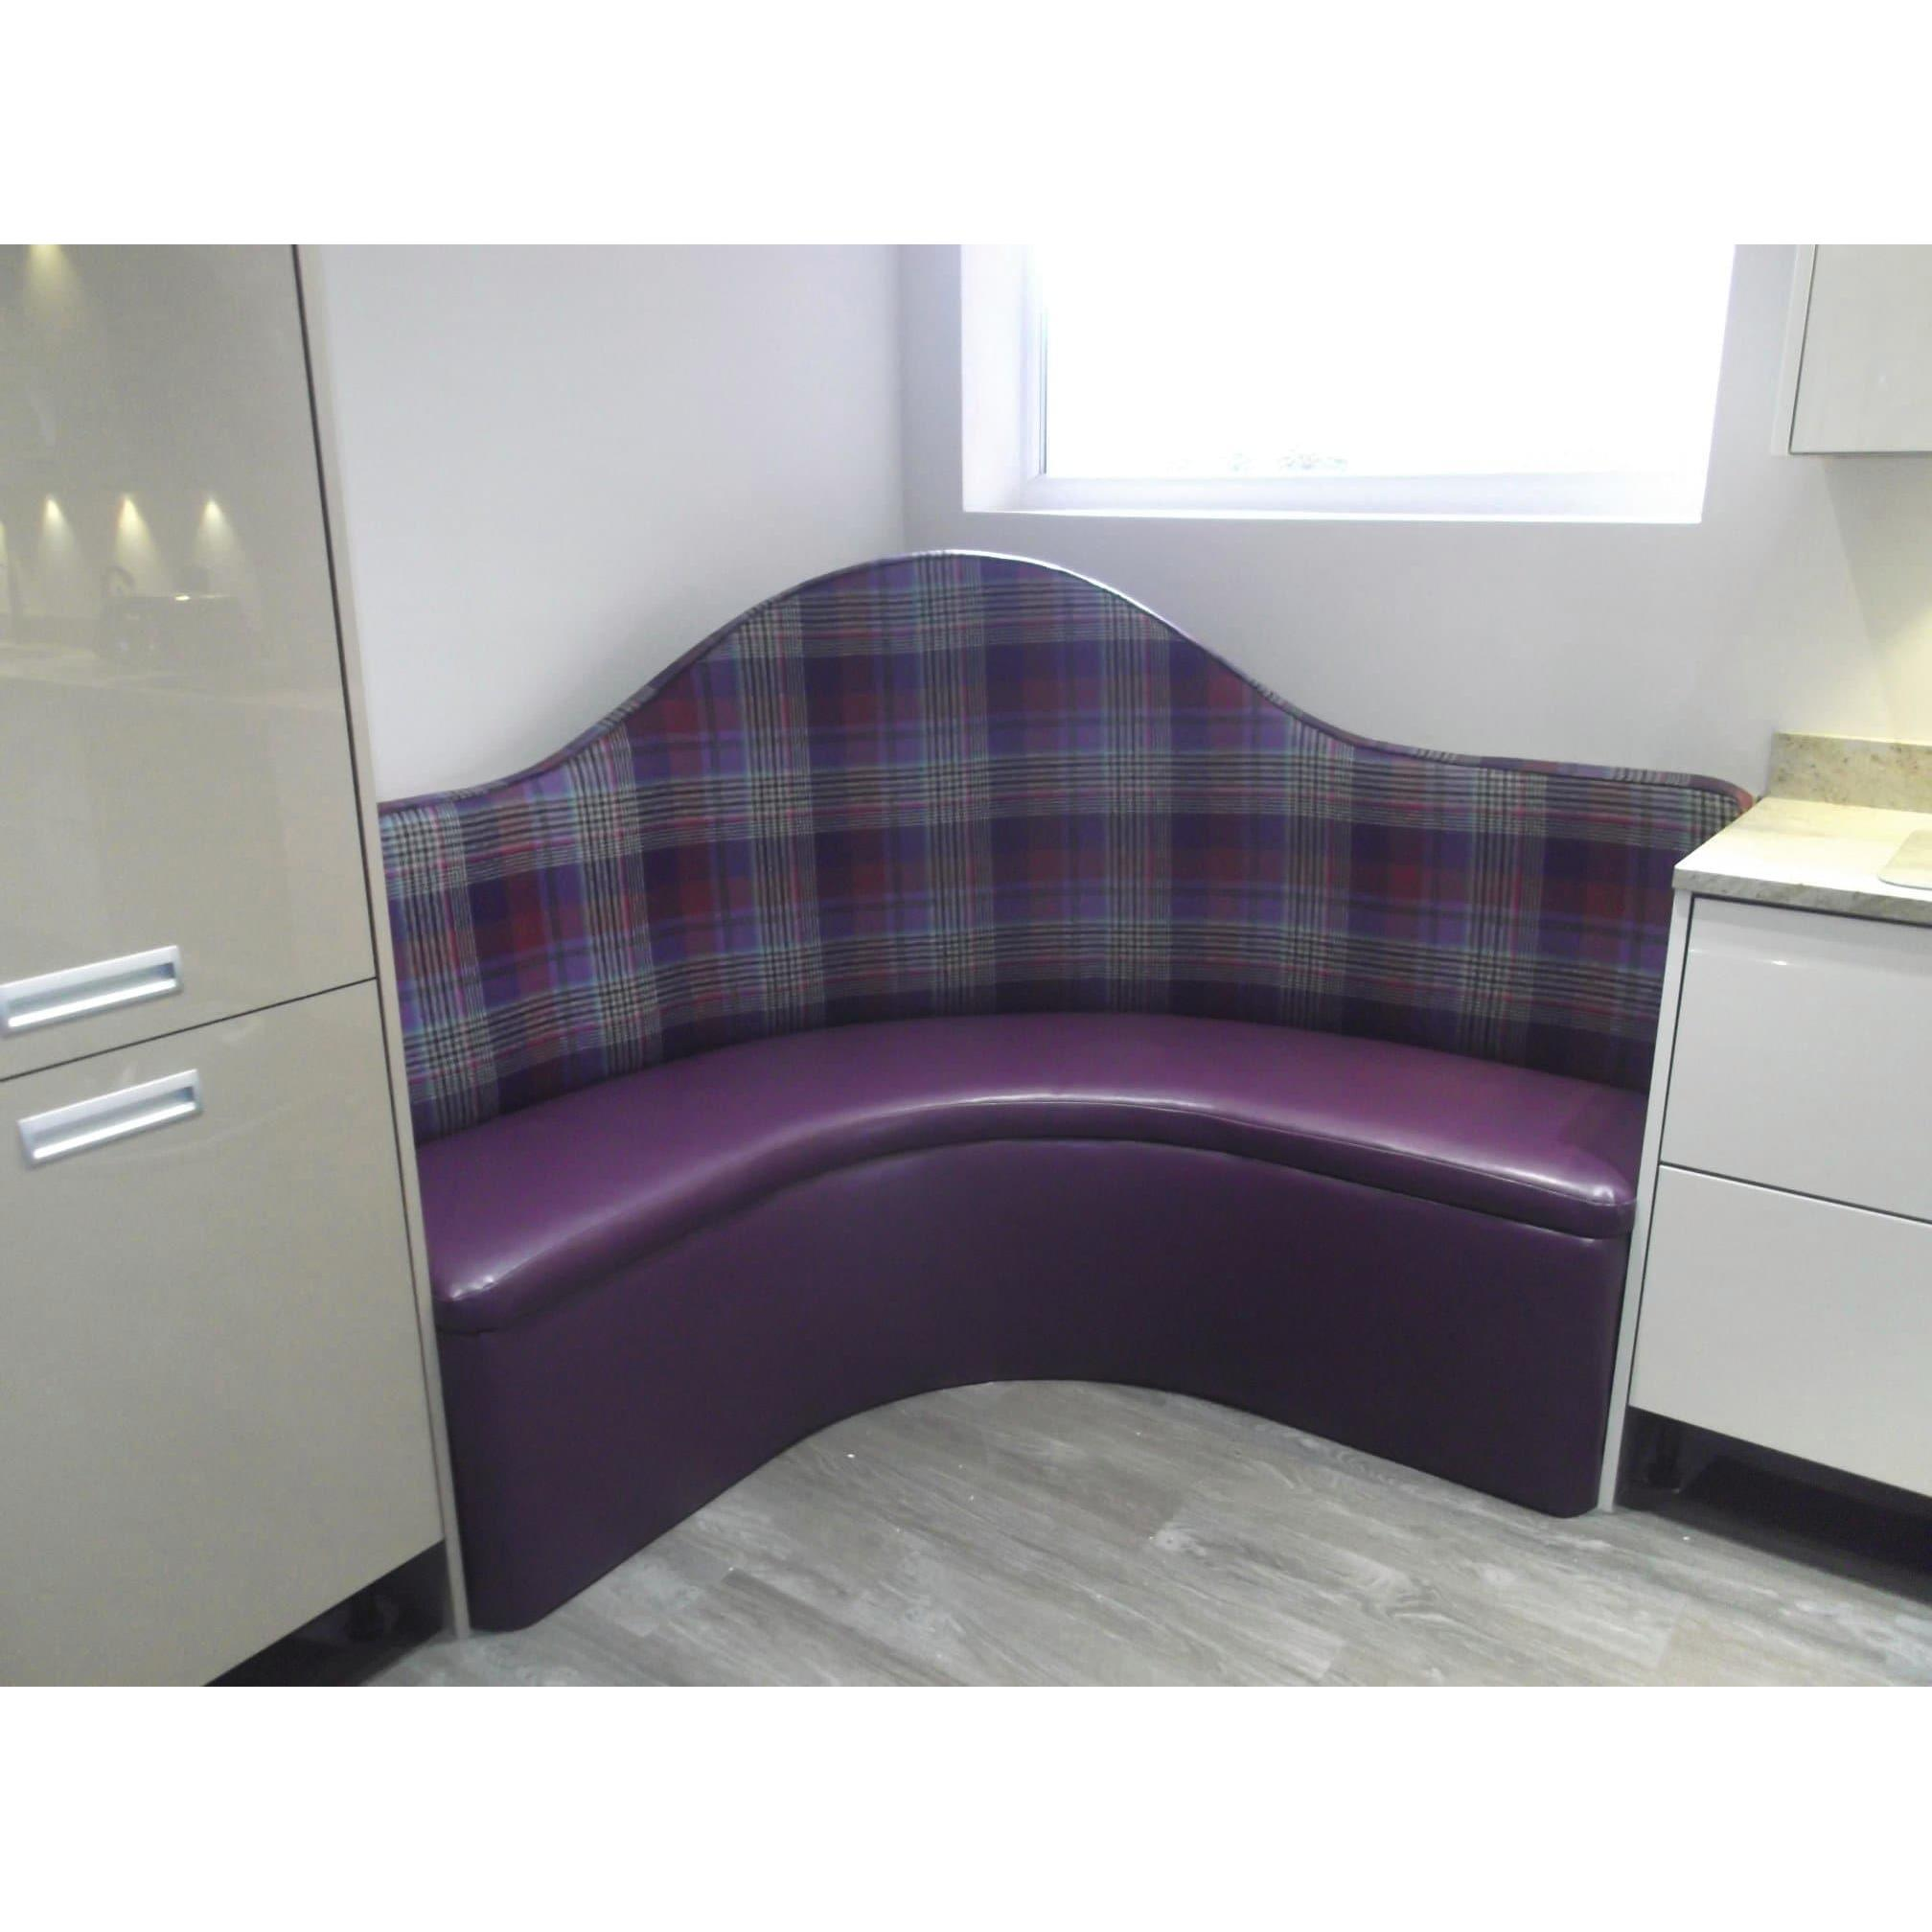 Total Upholstery Services - South Shields, Tyne and Wear NE34 8HY - 01914 221864 | ShowMeLocal.com